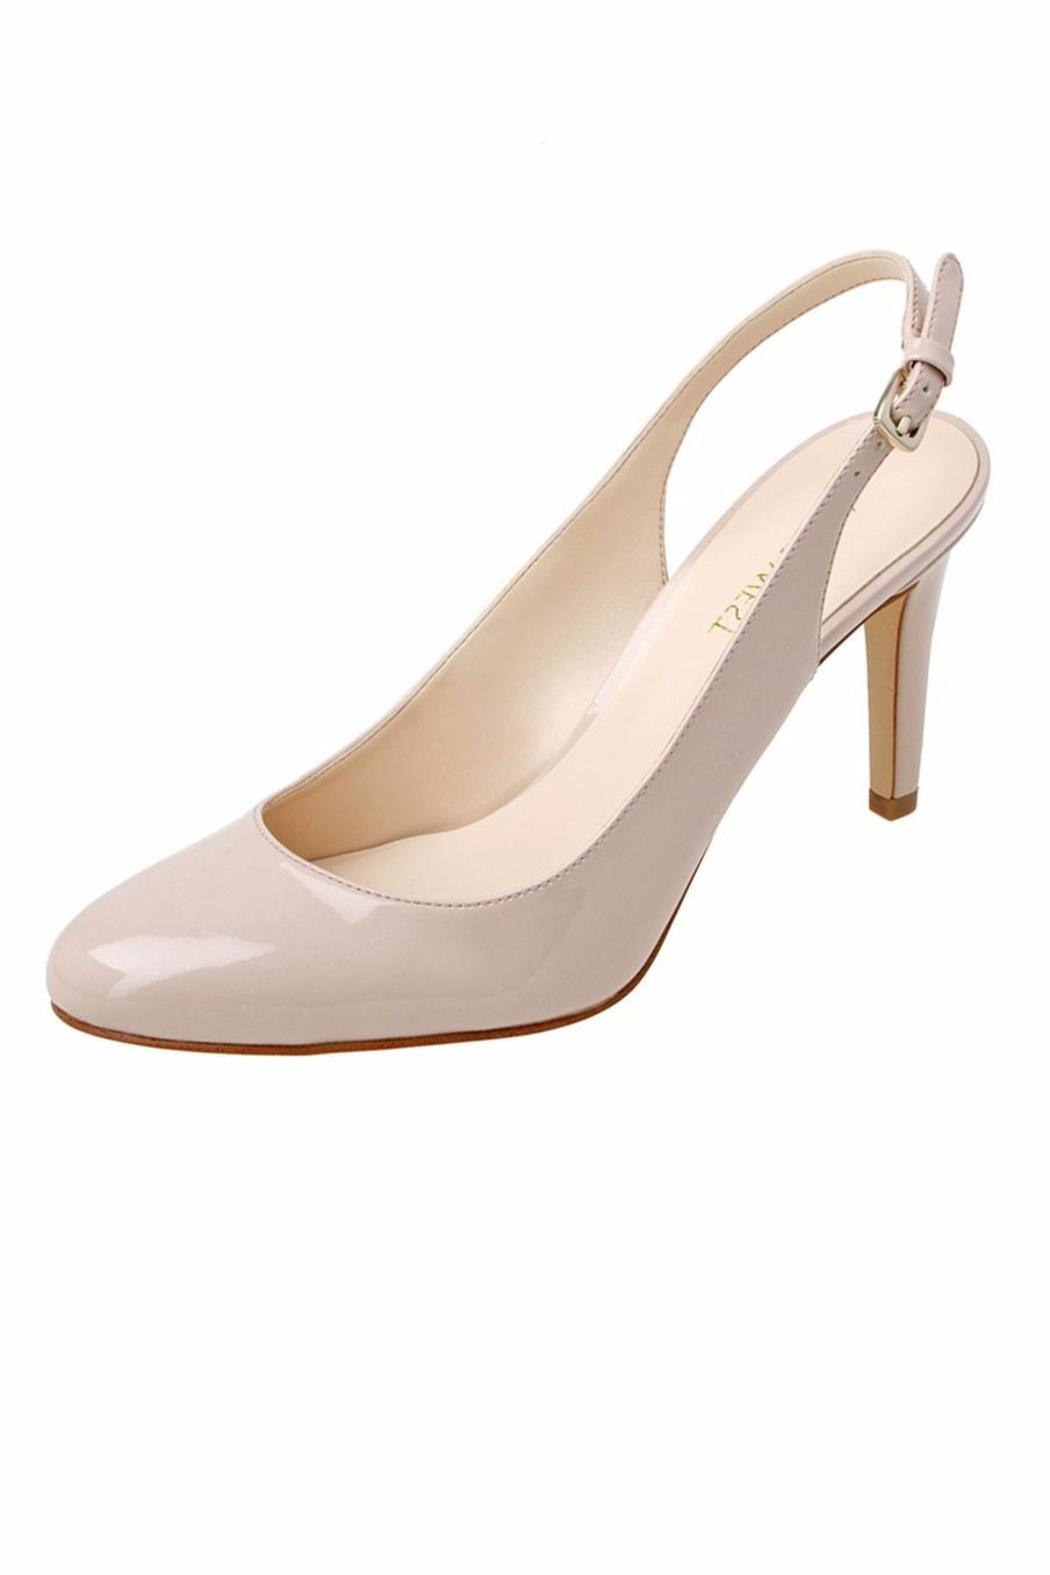 a5651bbd876 Nine West Holiday Slingback Pump from Edmonton by Modern Sole ...